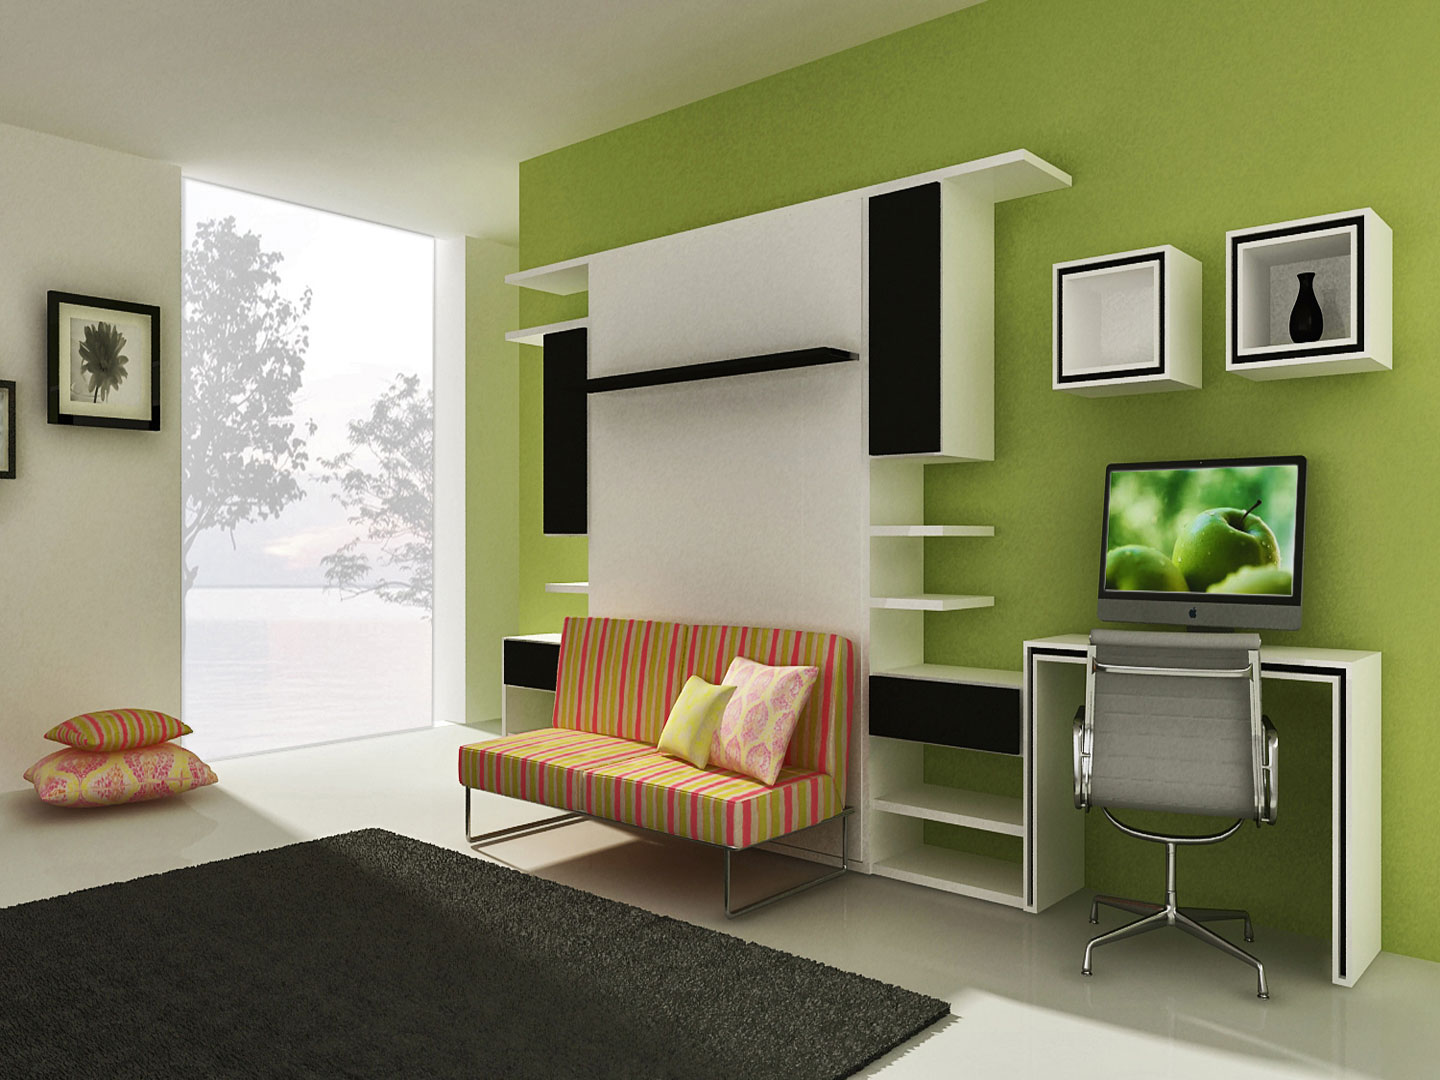 Wall Bed 28